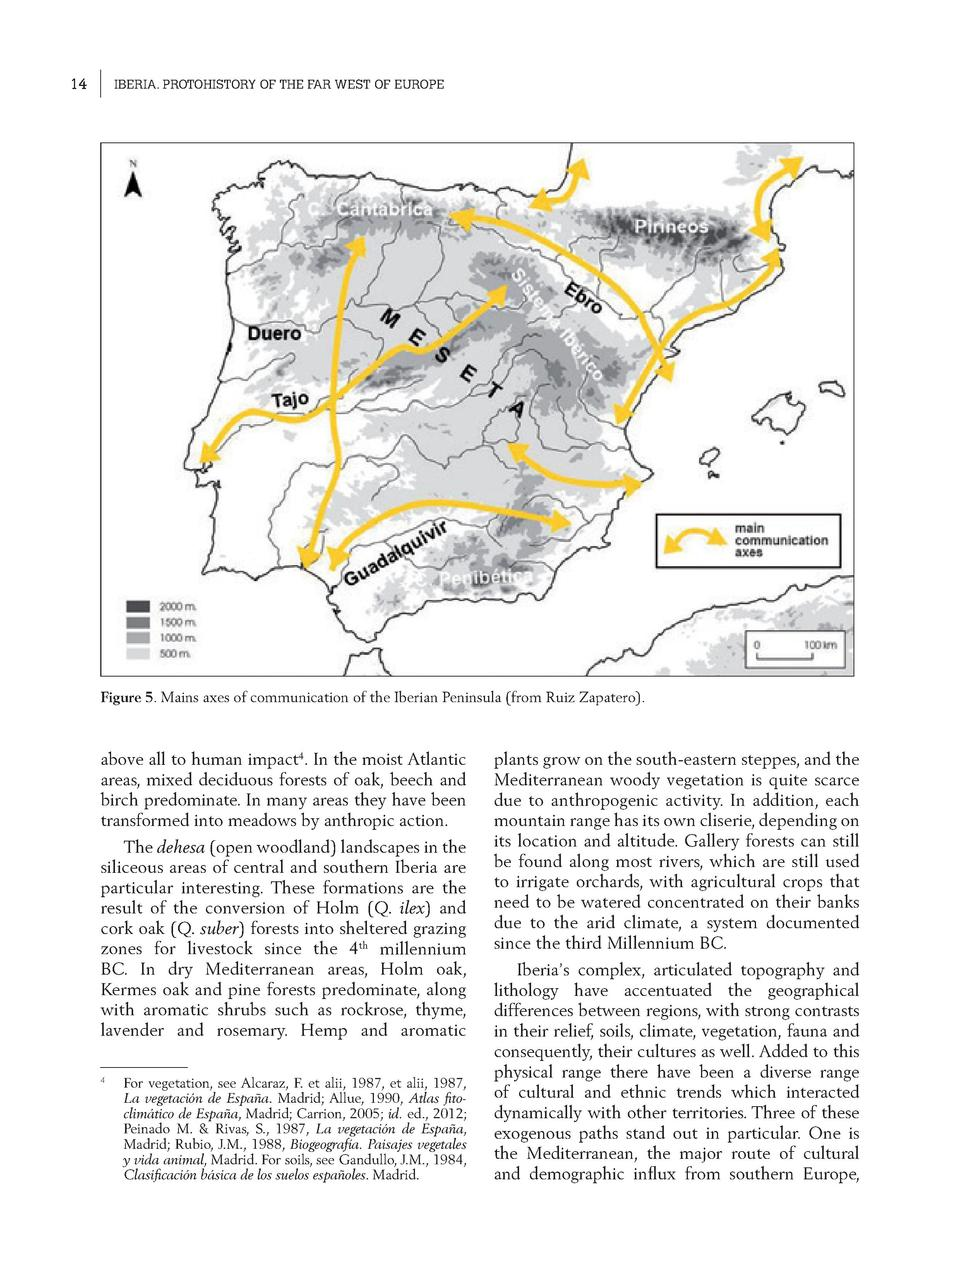 14  IBERIA. PROTOHISTORY OF THE FAR WEST OF EUROPE  Figure 5. Mains axes of communication of the Iberian Peninsula  from R...